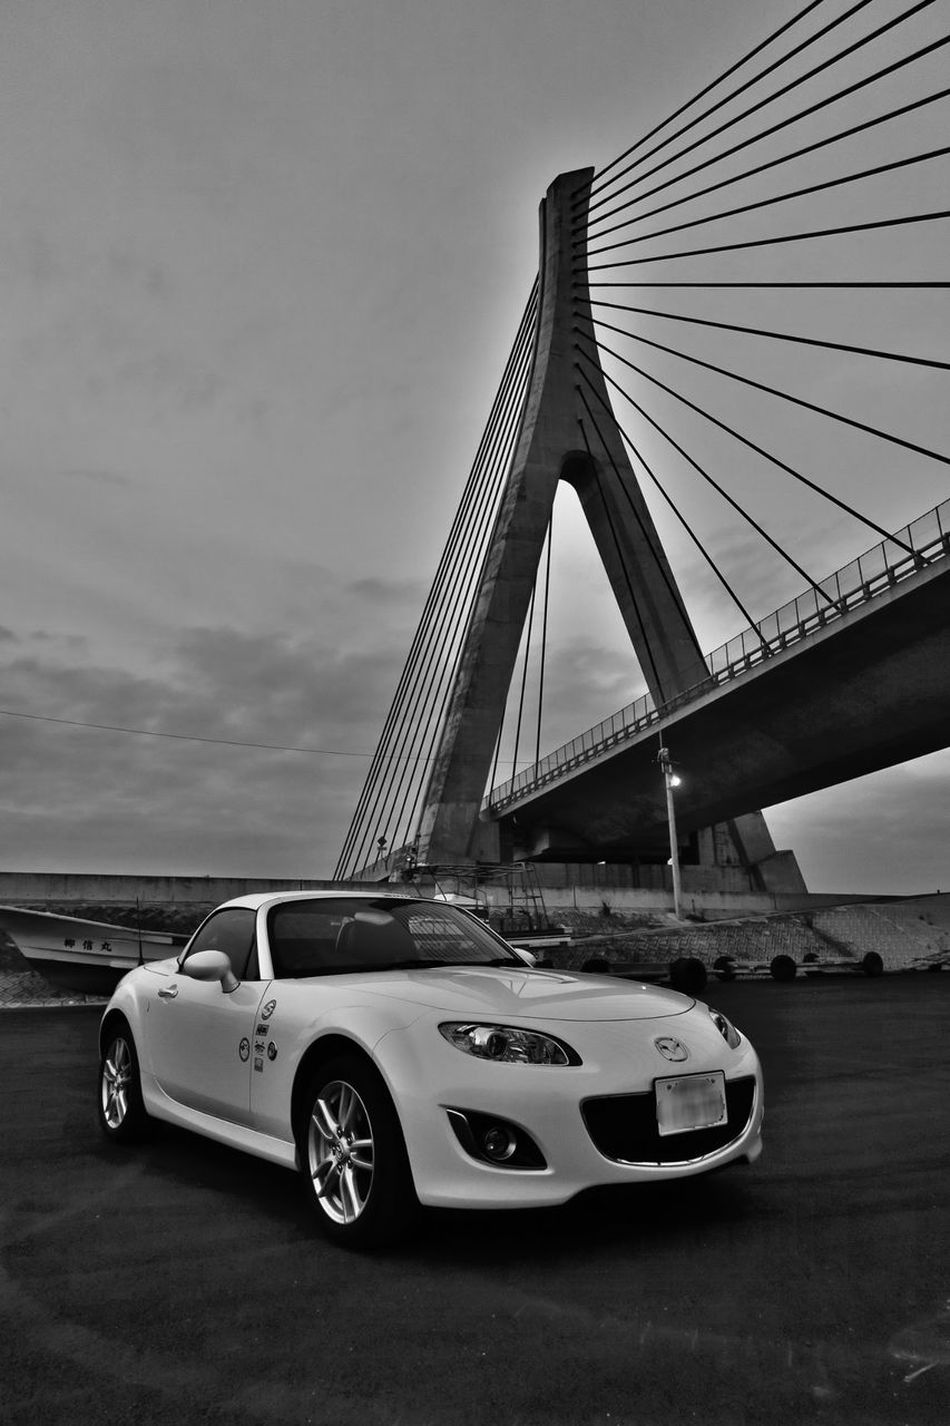 Bridge - Man Made Structure Car Connection Architecture Sky Transportation Bridge Road Mazda Mx5 Miata マツダ ロードスター Nc2 有明海沿岸道路 矢加部大橋 柳川 Built Structure No People Modern Suspension Bridge Travel Destinations Travel Outdoors Day